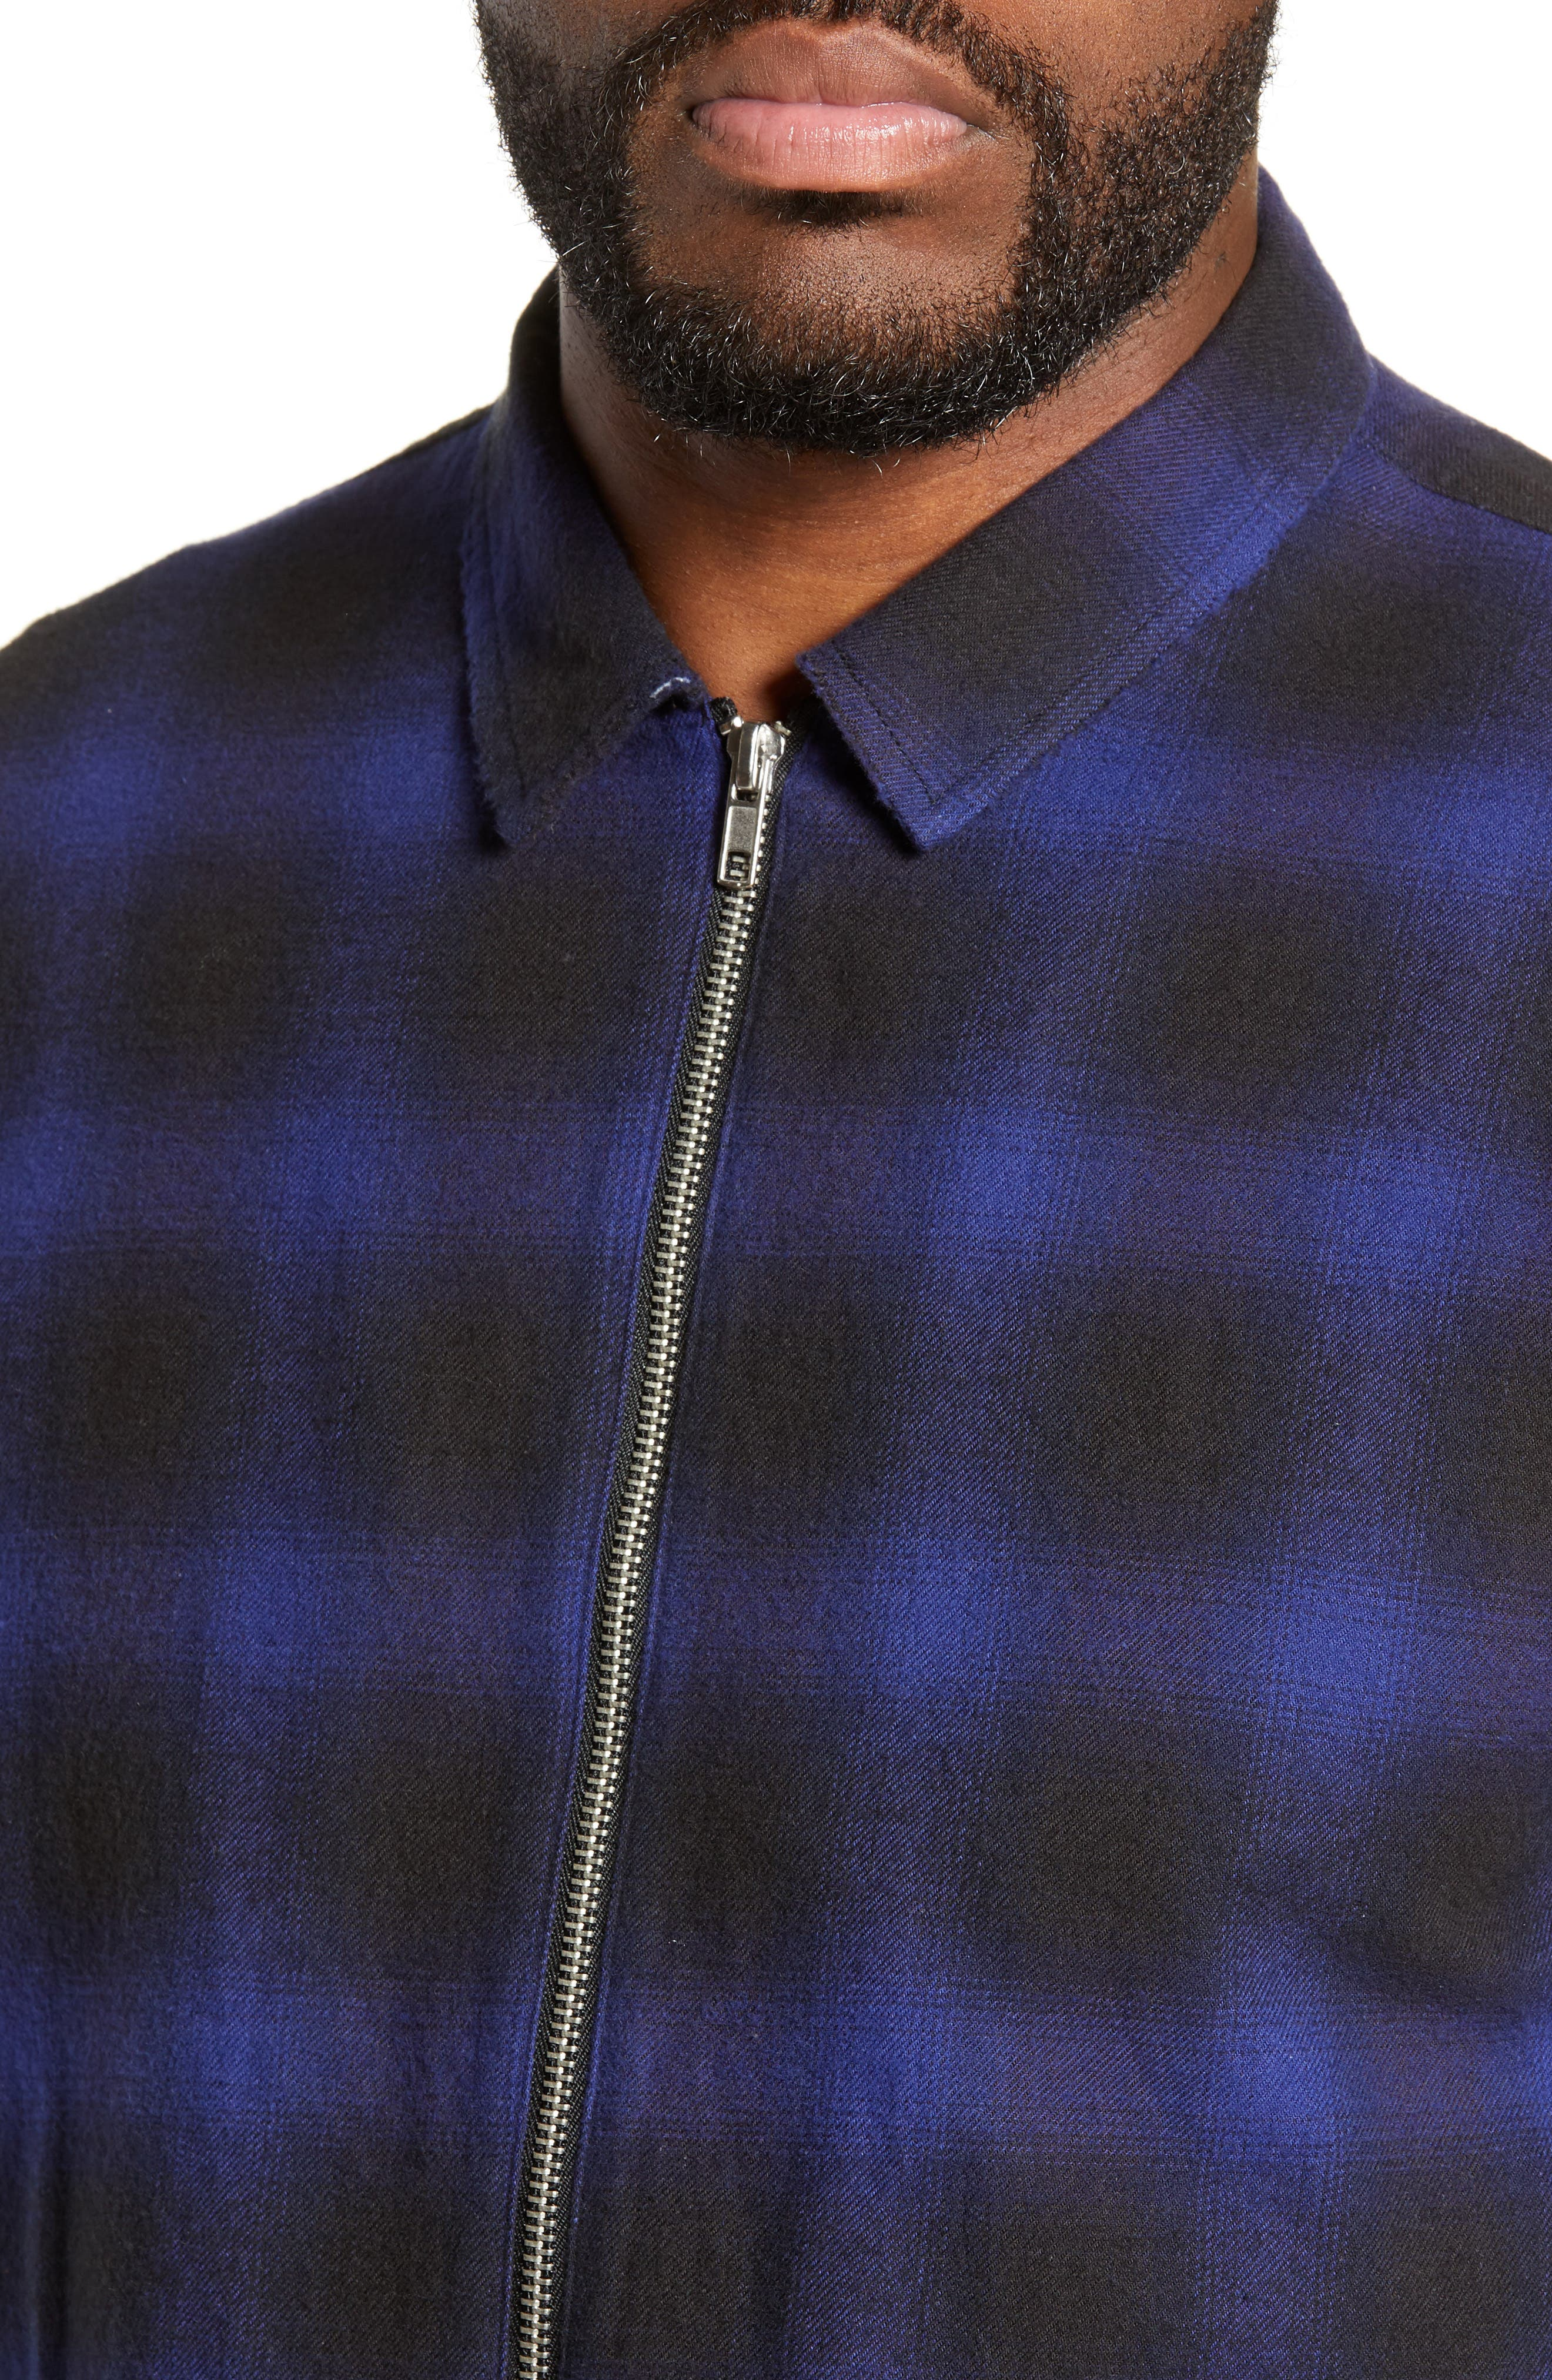 THE KOOPLES, Zip Flannel Jacket, Alternate thumbnail 4, color, BLUE BLACK